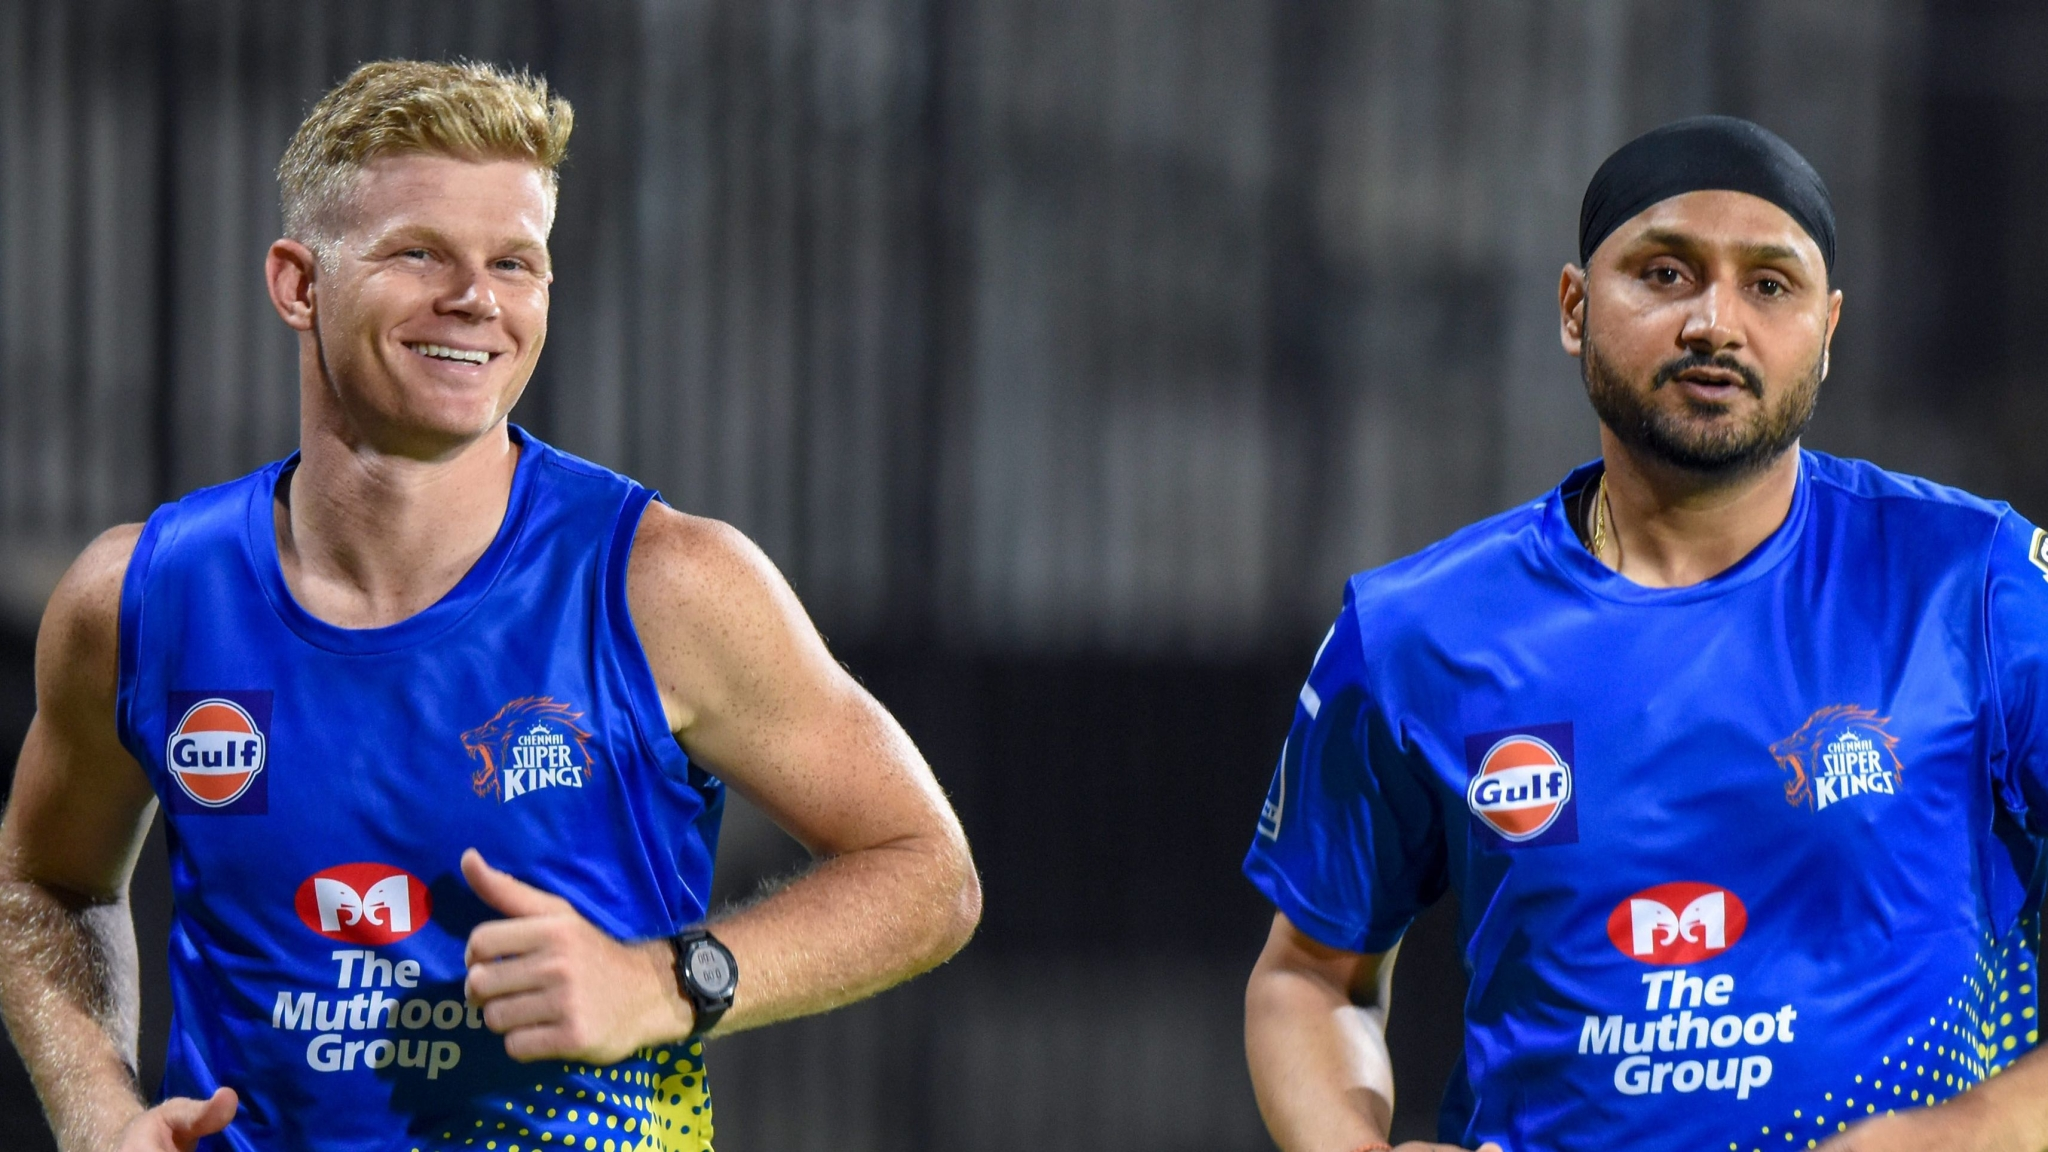 CSK Release Sam Billings, David Willey and 3 Indian Players